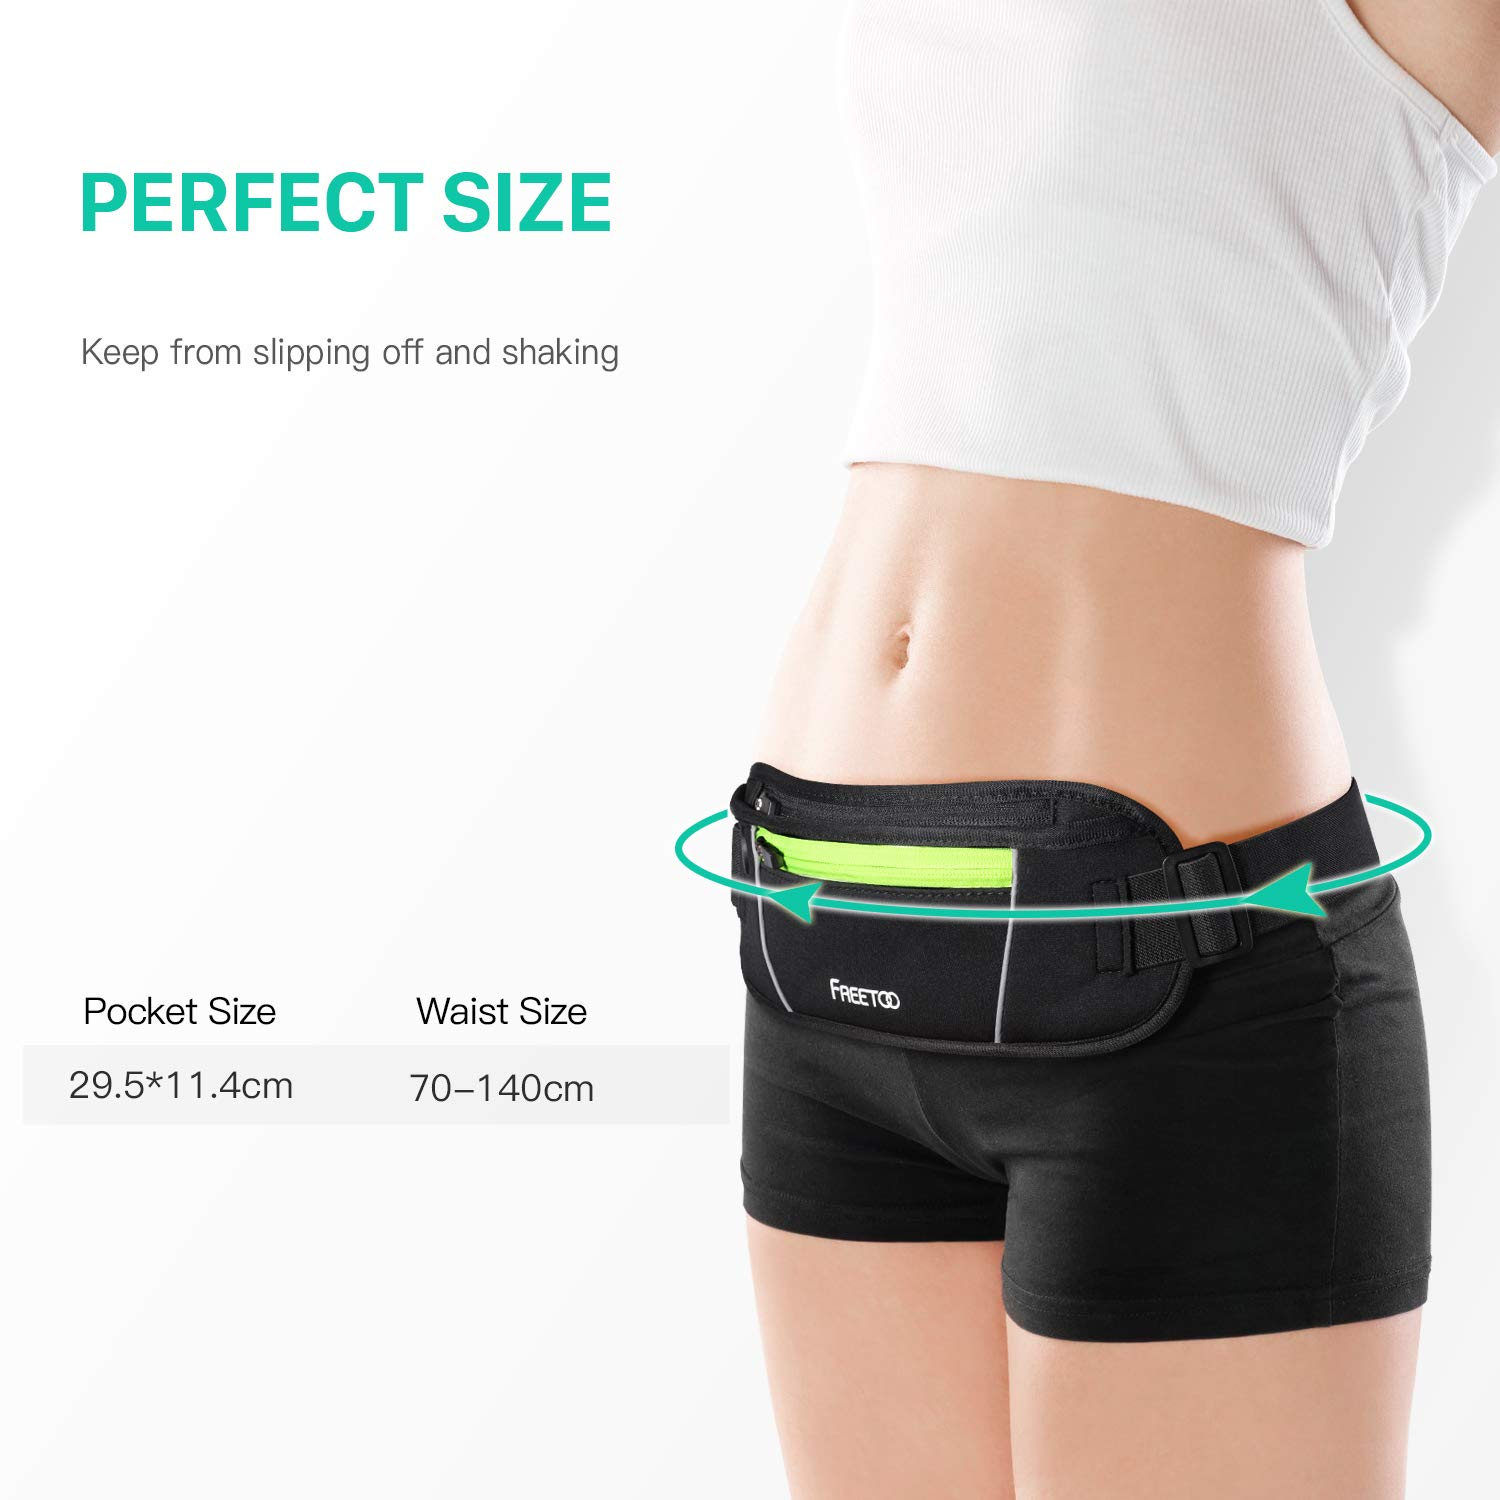 Black/&Green Ideal for Apple iPhone 8//7//6s//6 FREETOO Running Belt Running Waist Pack Bounce Free Waist Pouch Exercise Workout Belt for Women/&Men